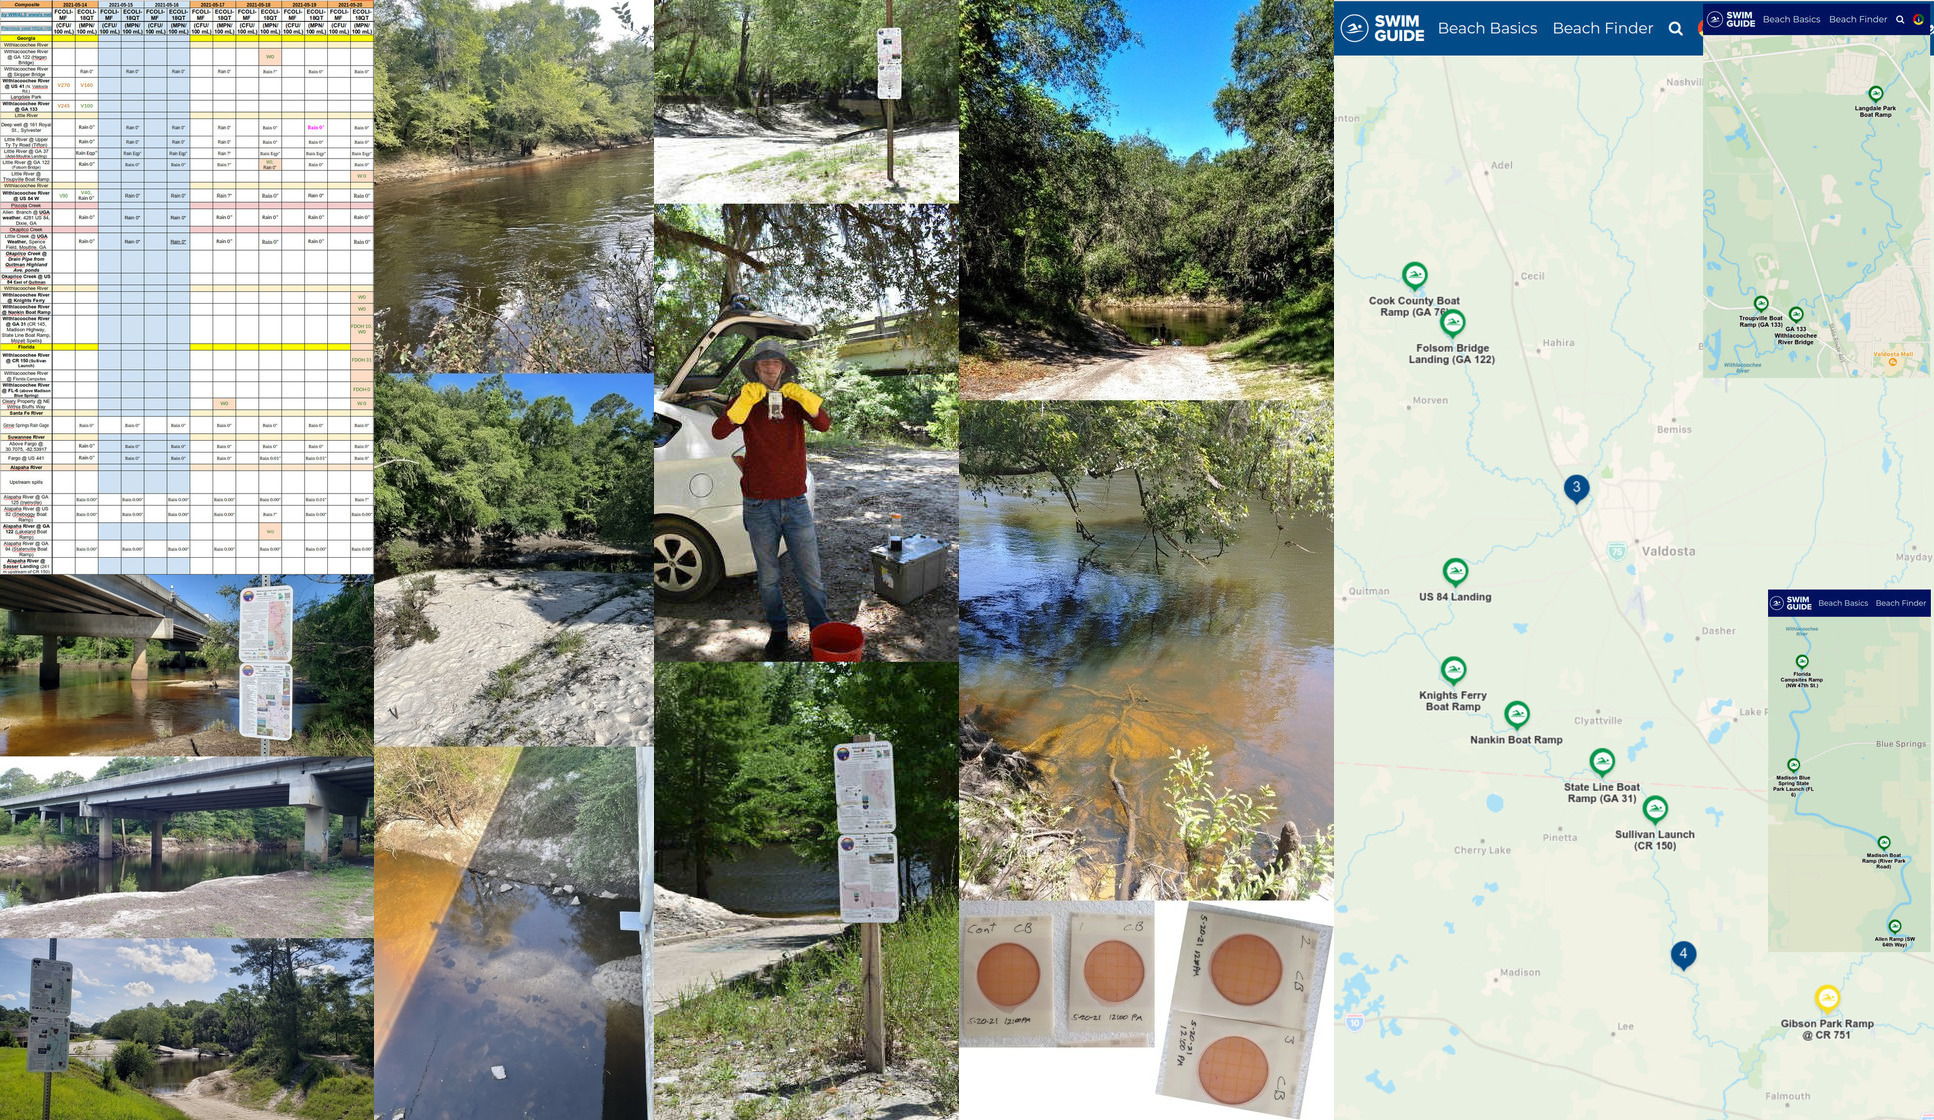 [All clear, many samples, three rivers, Swim Guide]